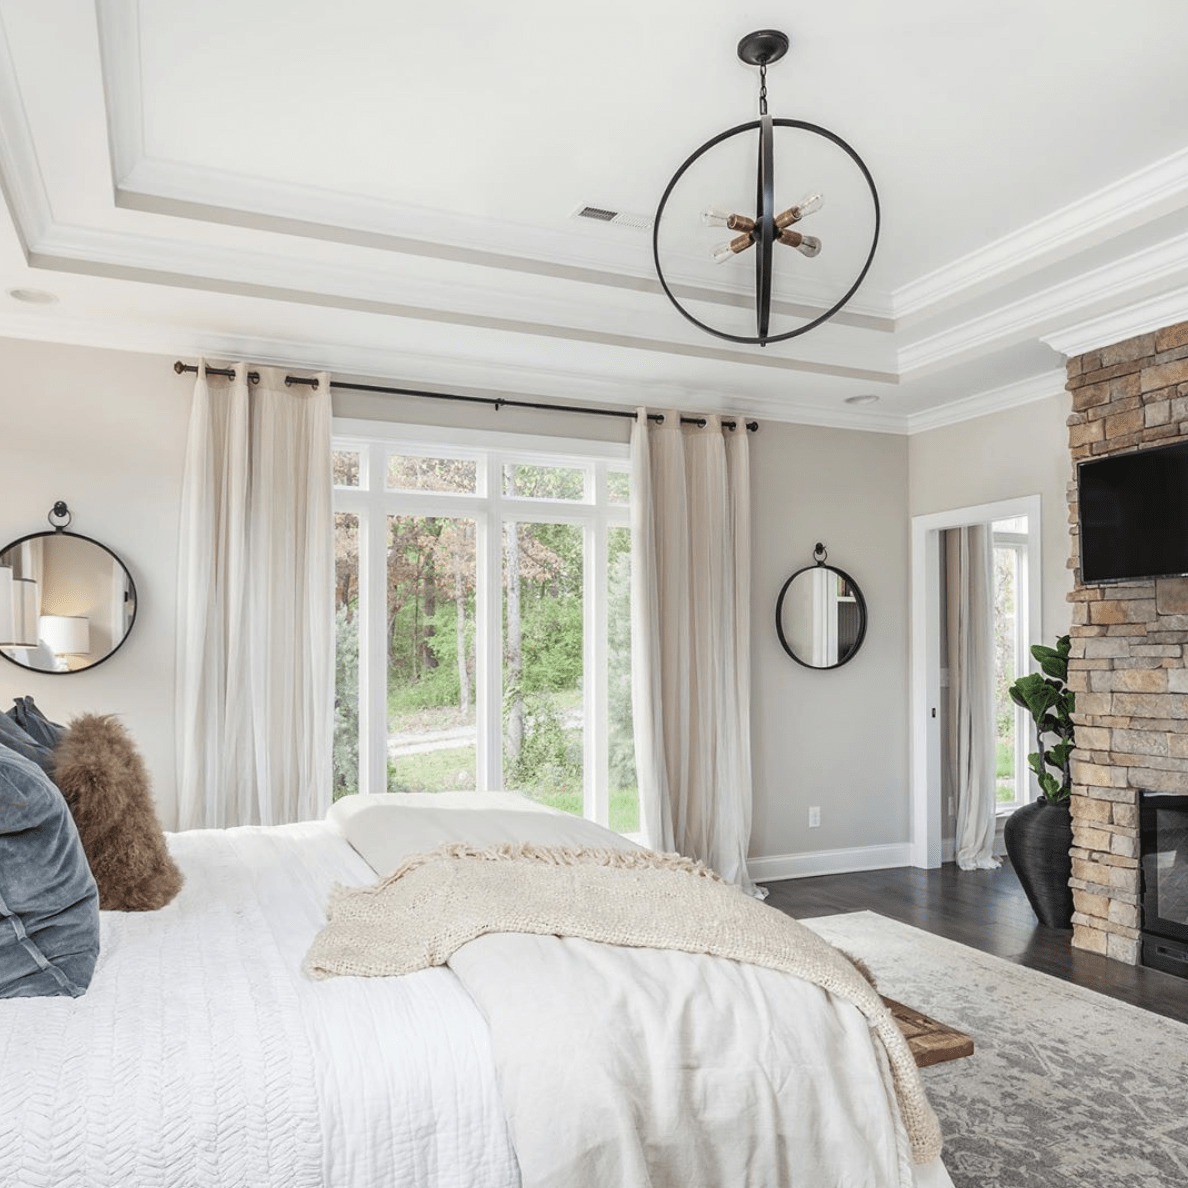 Master bedroom that shows the warm undertones of agreeable gray paint color on the walls